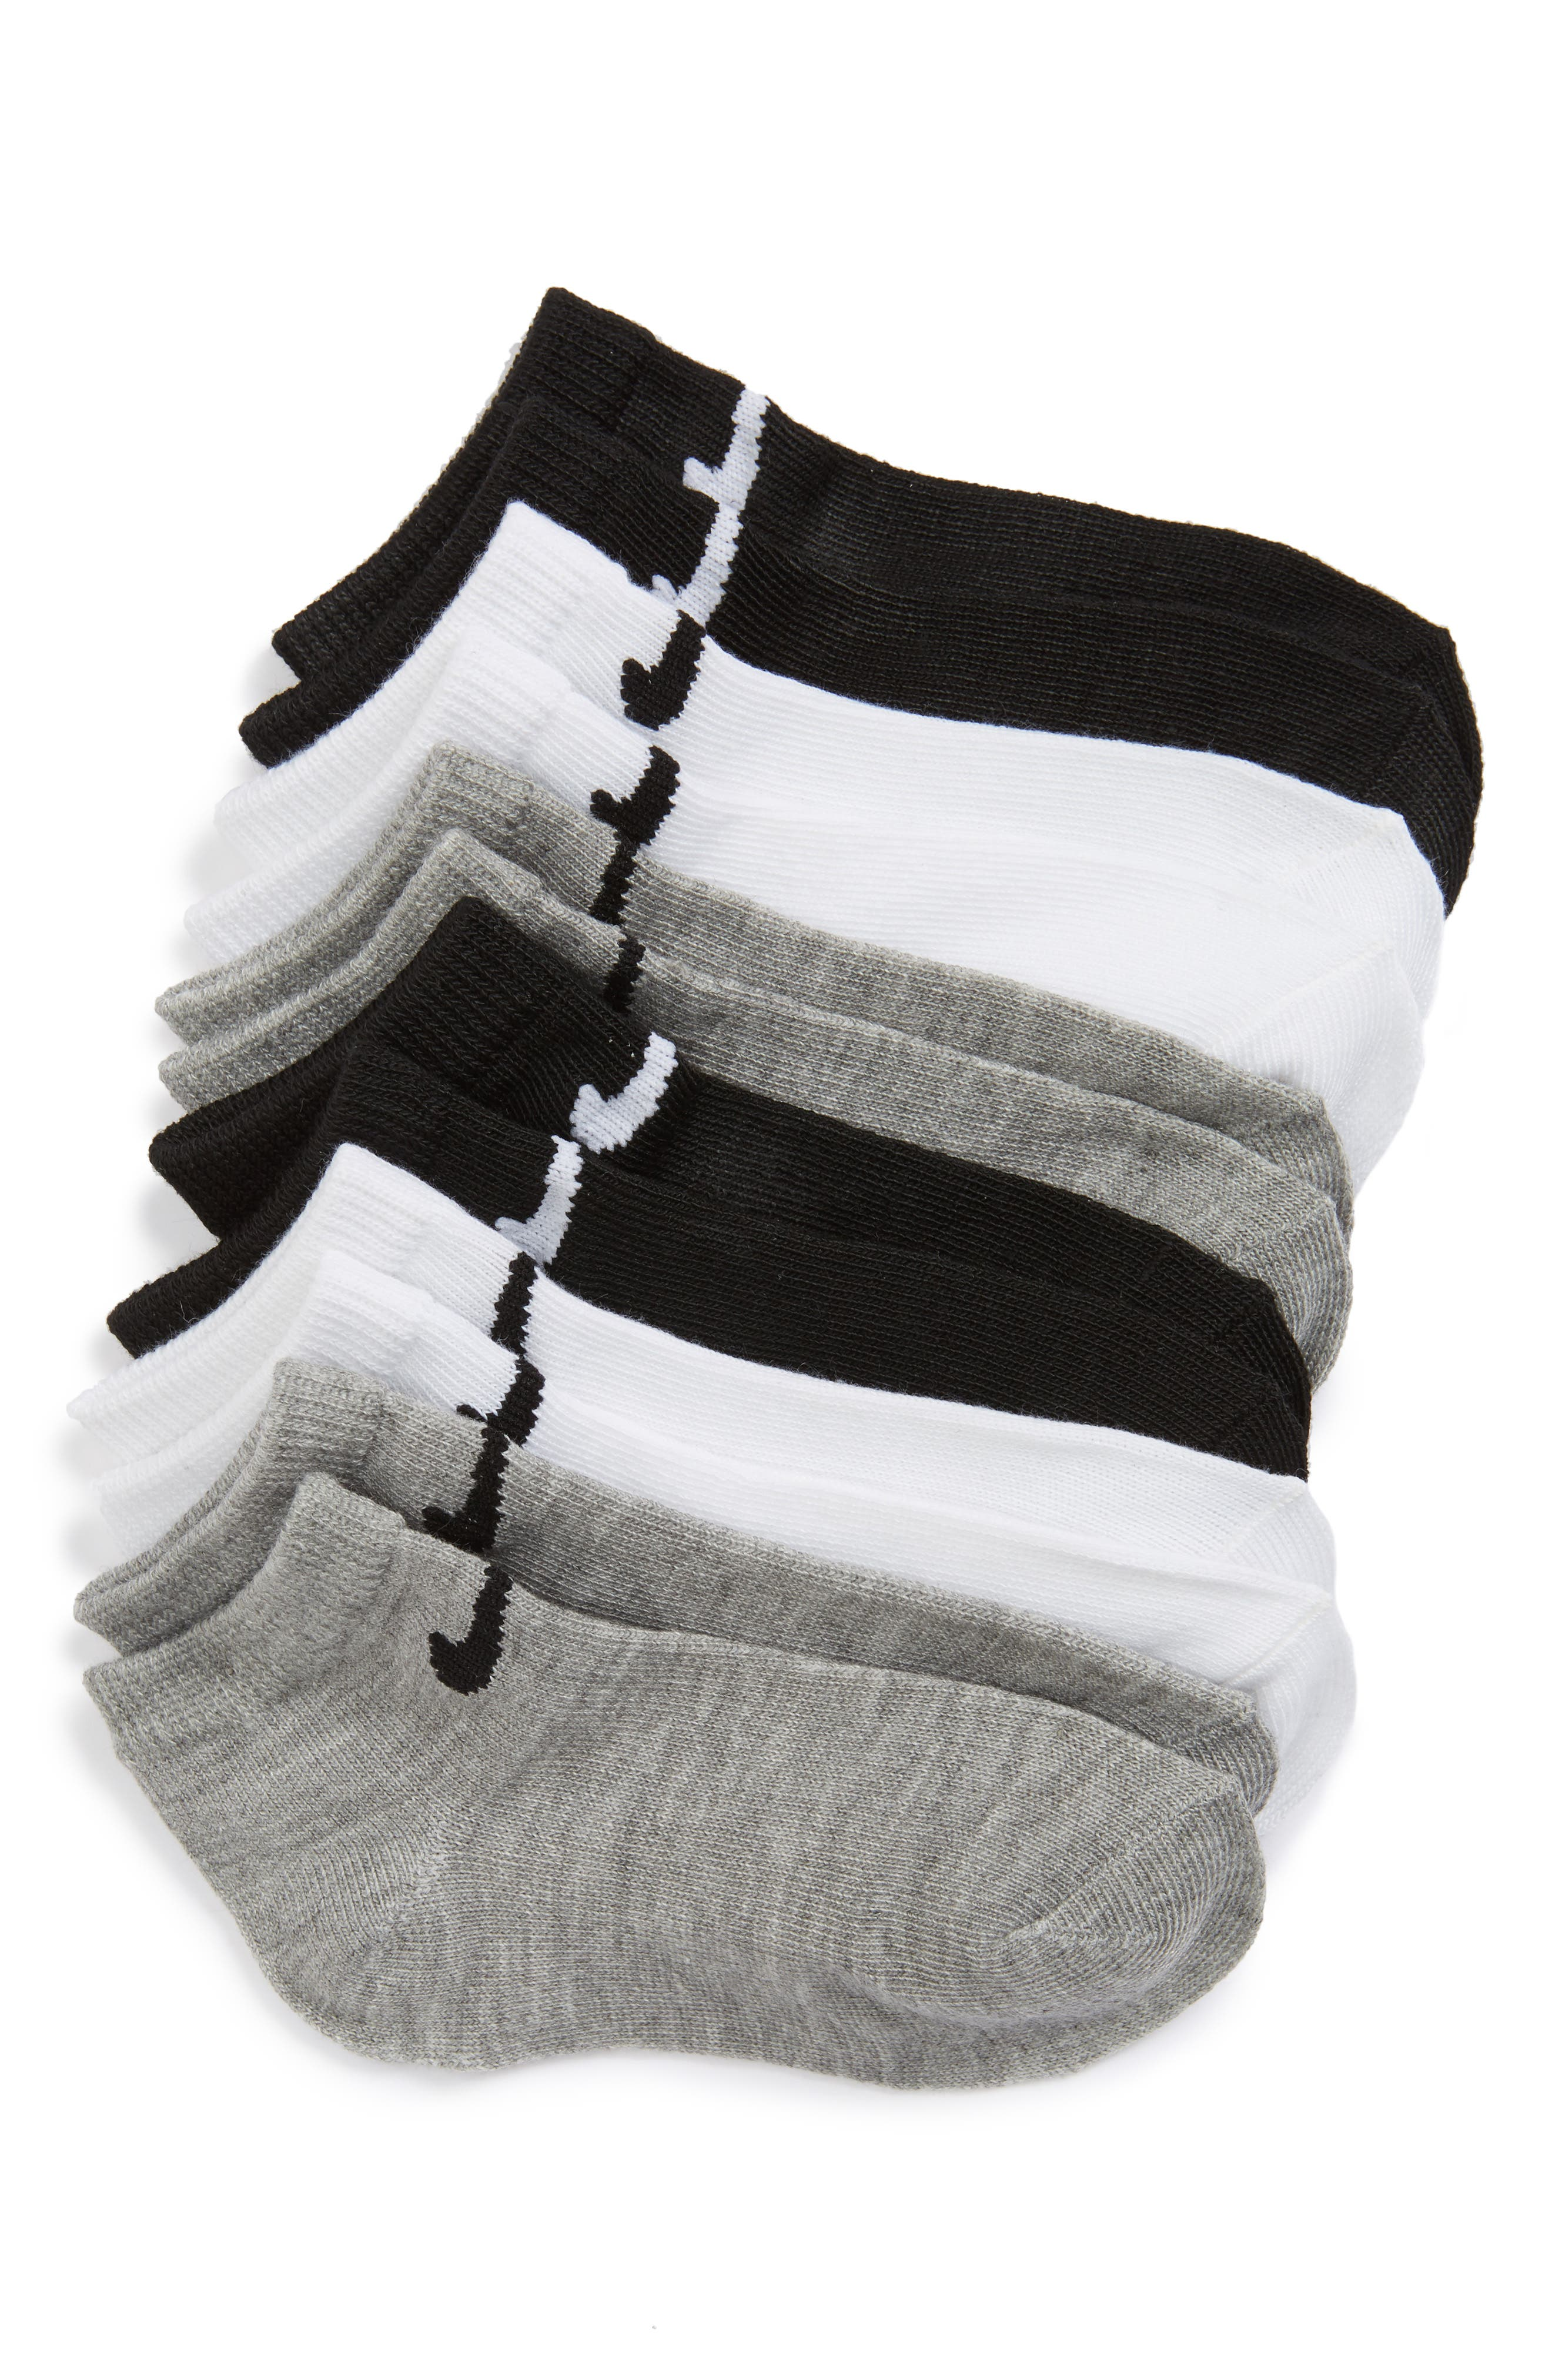 Main Image - Nike Low Cut Performance Socks (6-Pack) (Toddler & Little Kid)